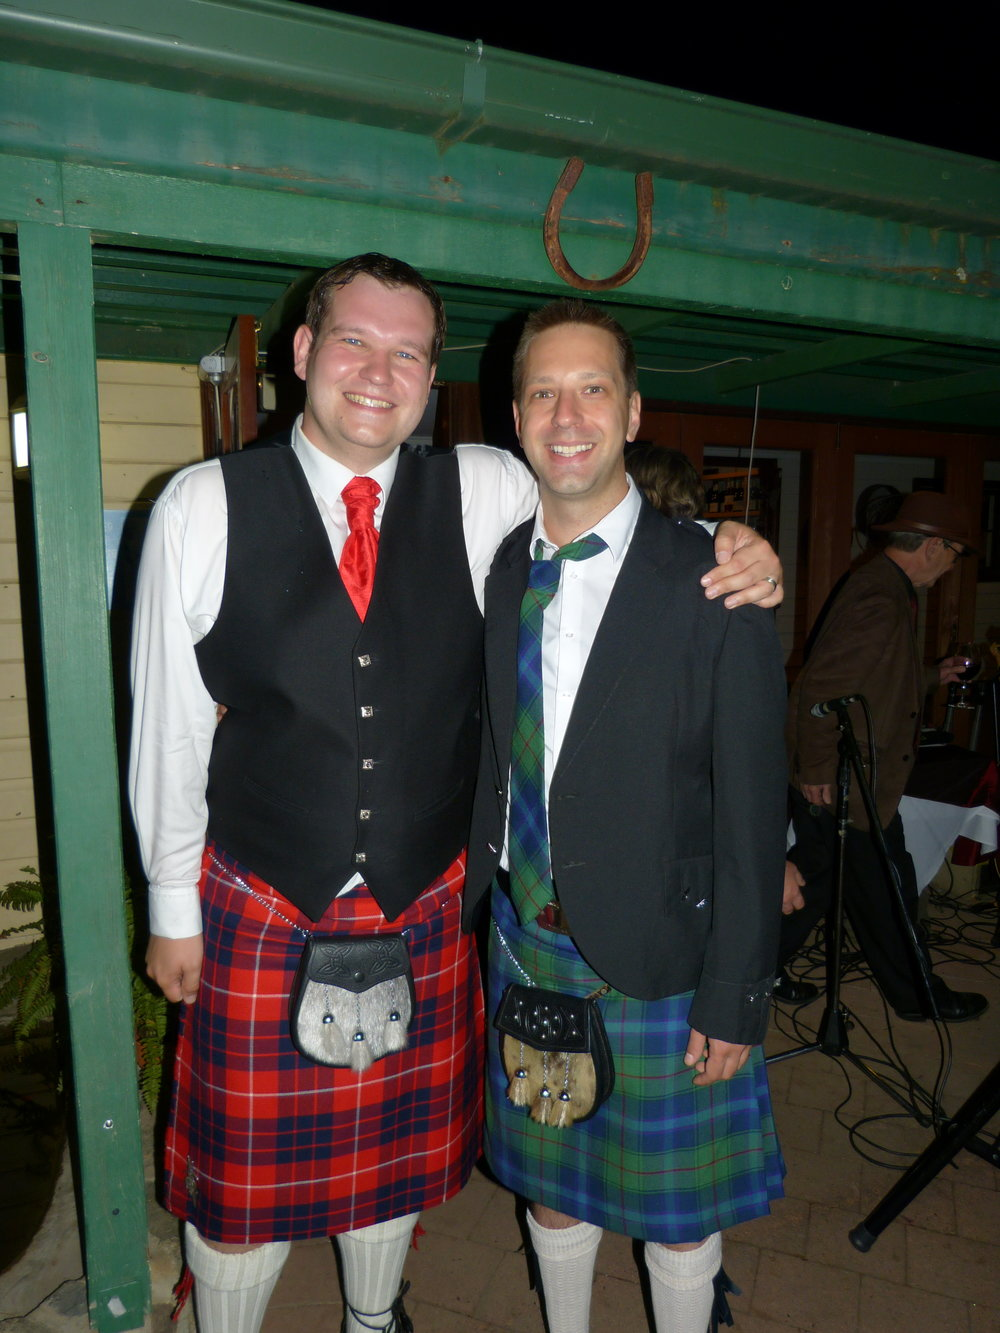 Dave (L) and me (R) wearing kilts at Dave's wedding. This was my first (and only) kilt-wearing experience.